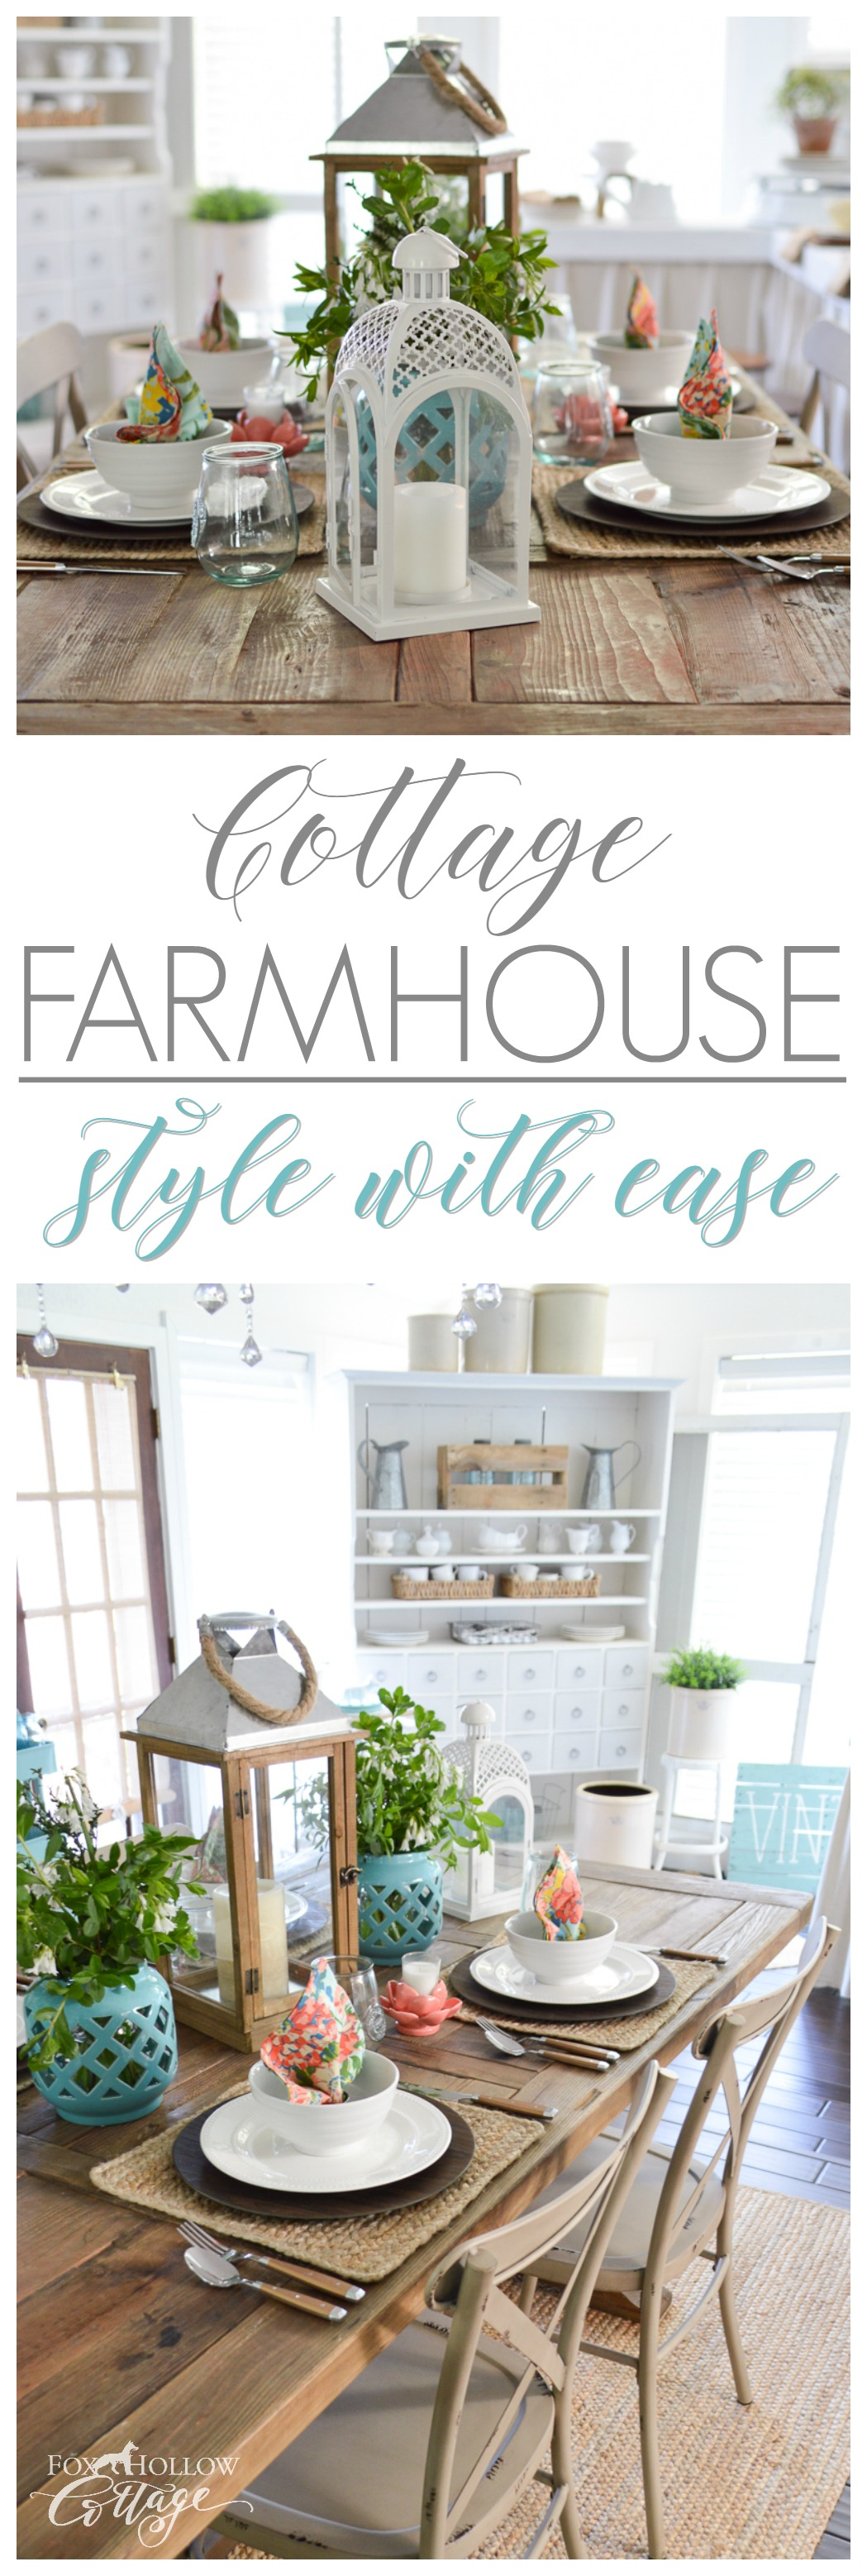 Easy cottage farmhouse decorating ideas - colorful fun farm table entertaining